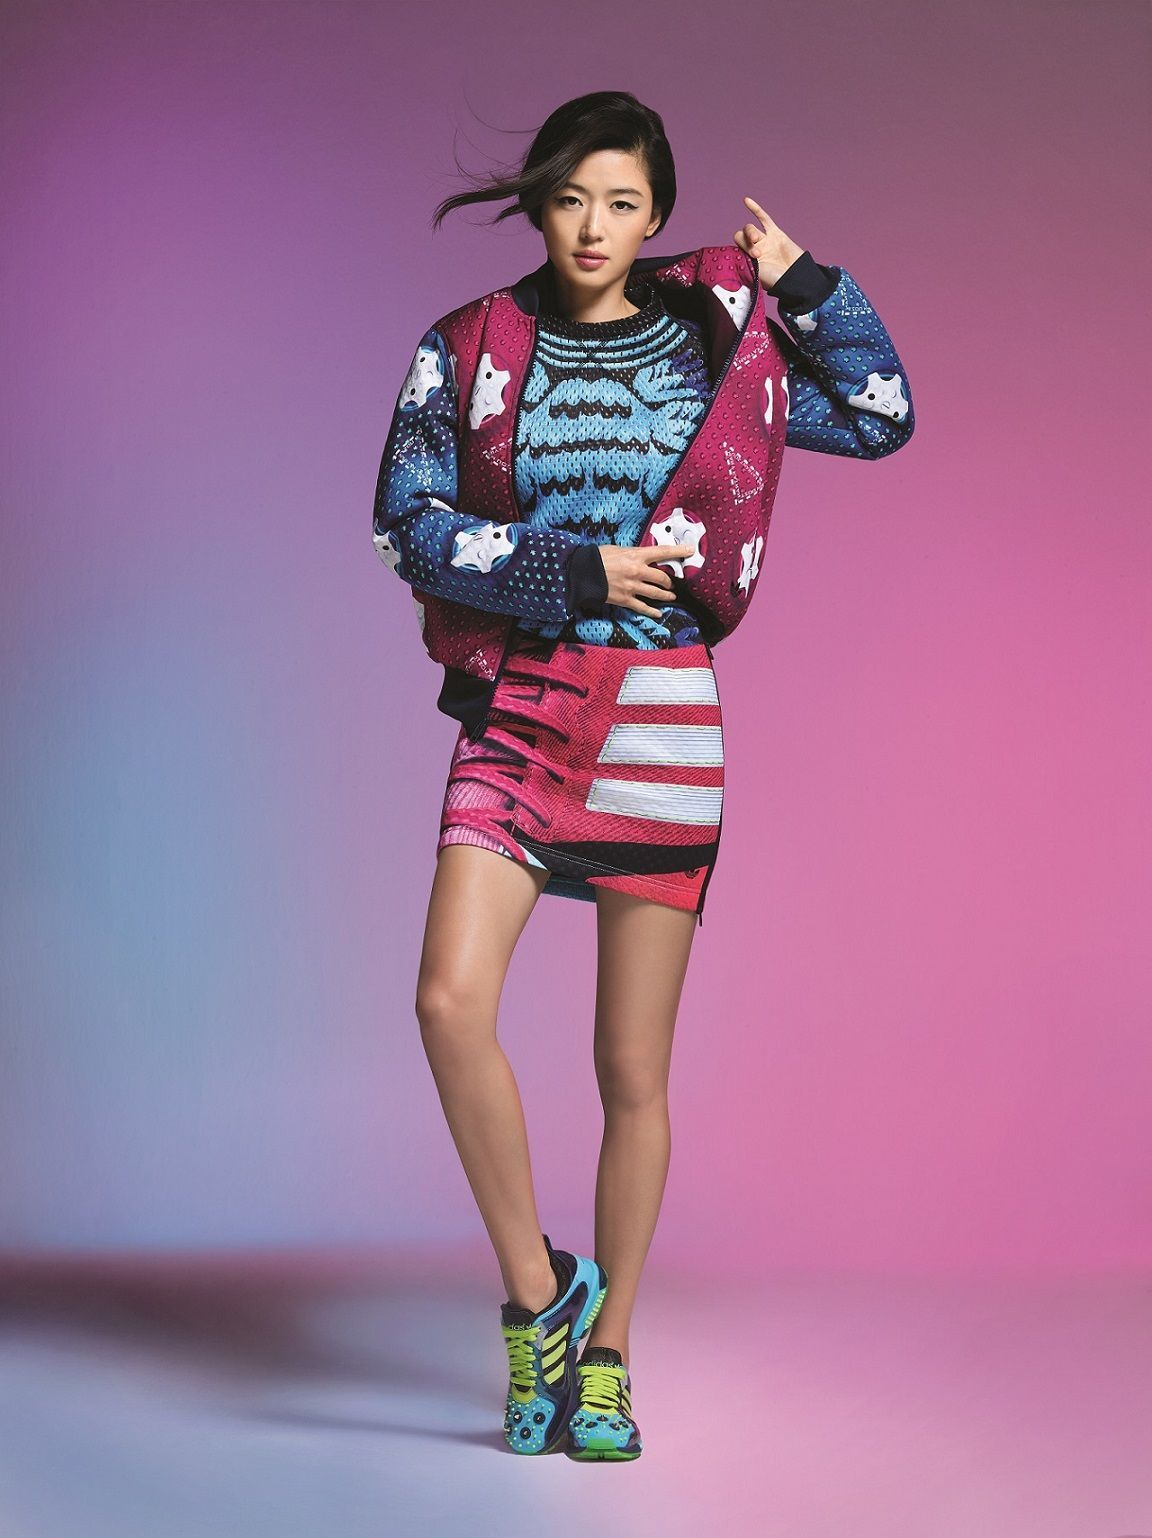 Jun Ji Hyun for Adidas Originals X Mary Katrantzou